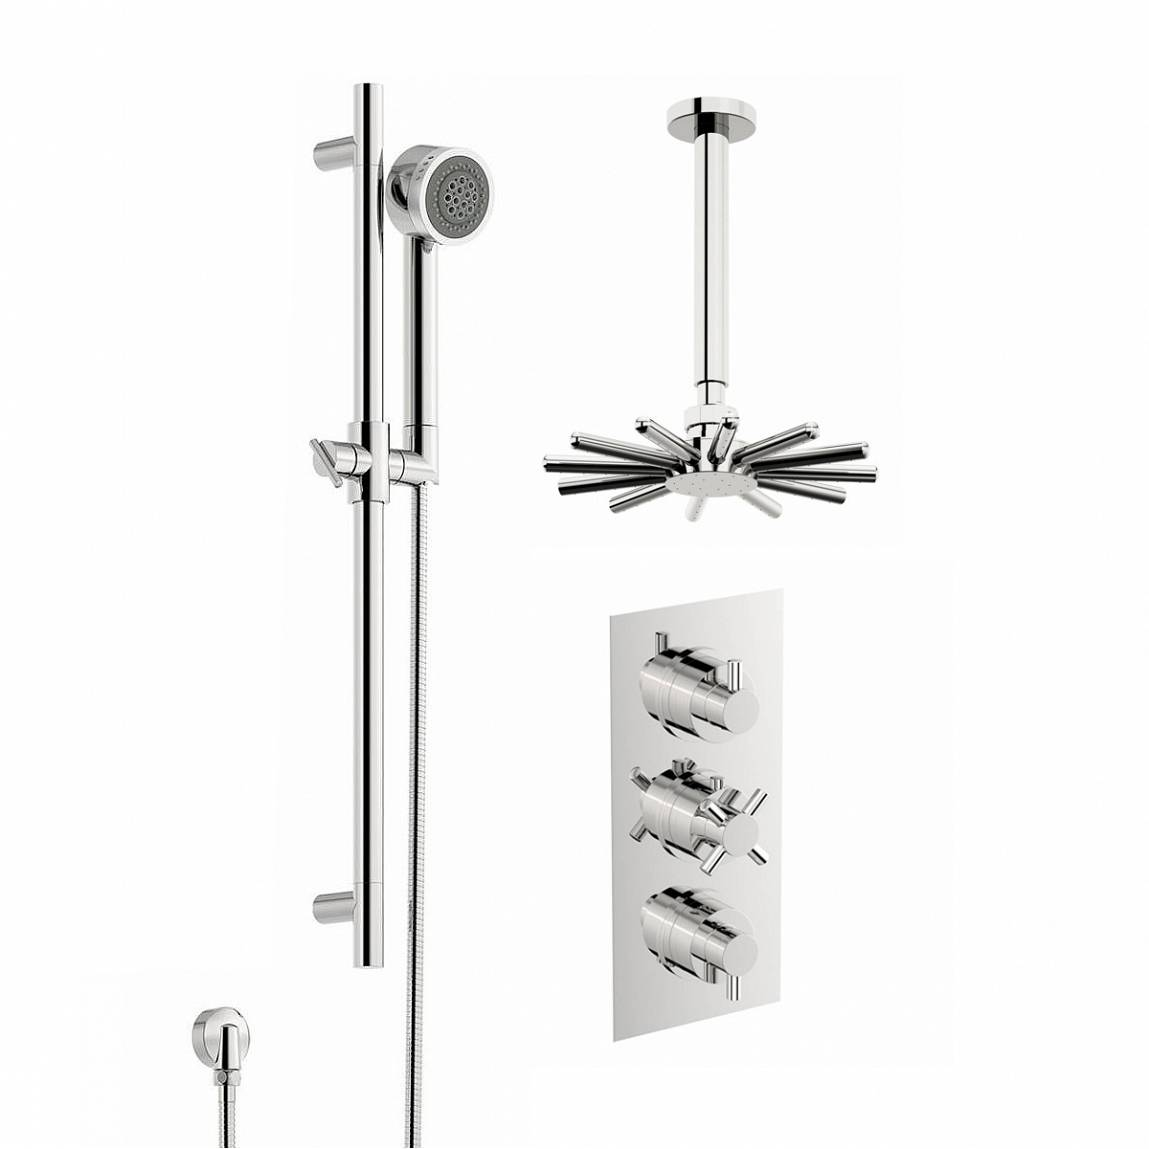 Image of Alexa Thermostatic Triple Valve Complete Shower Set